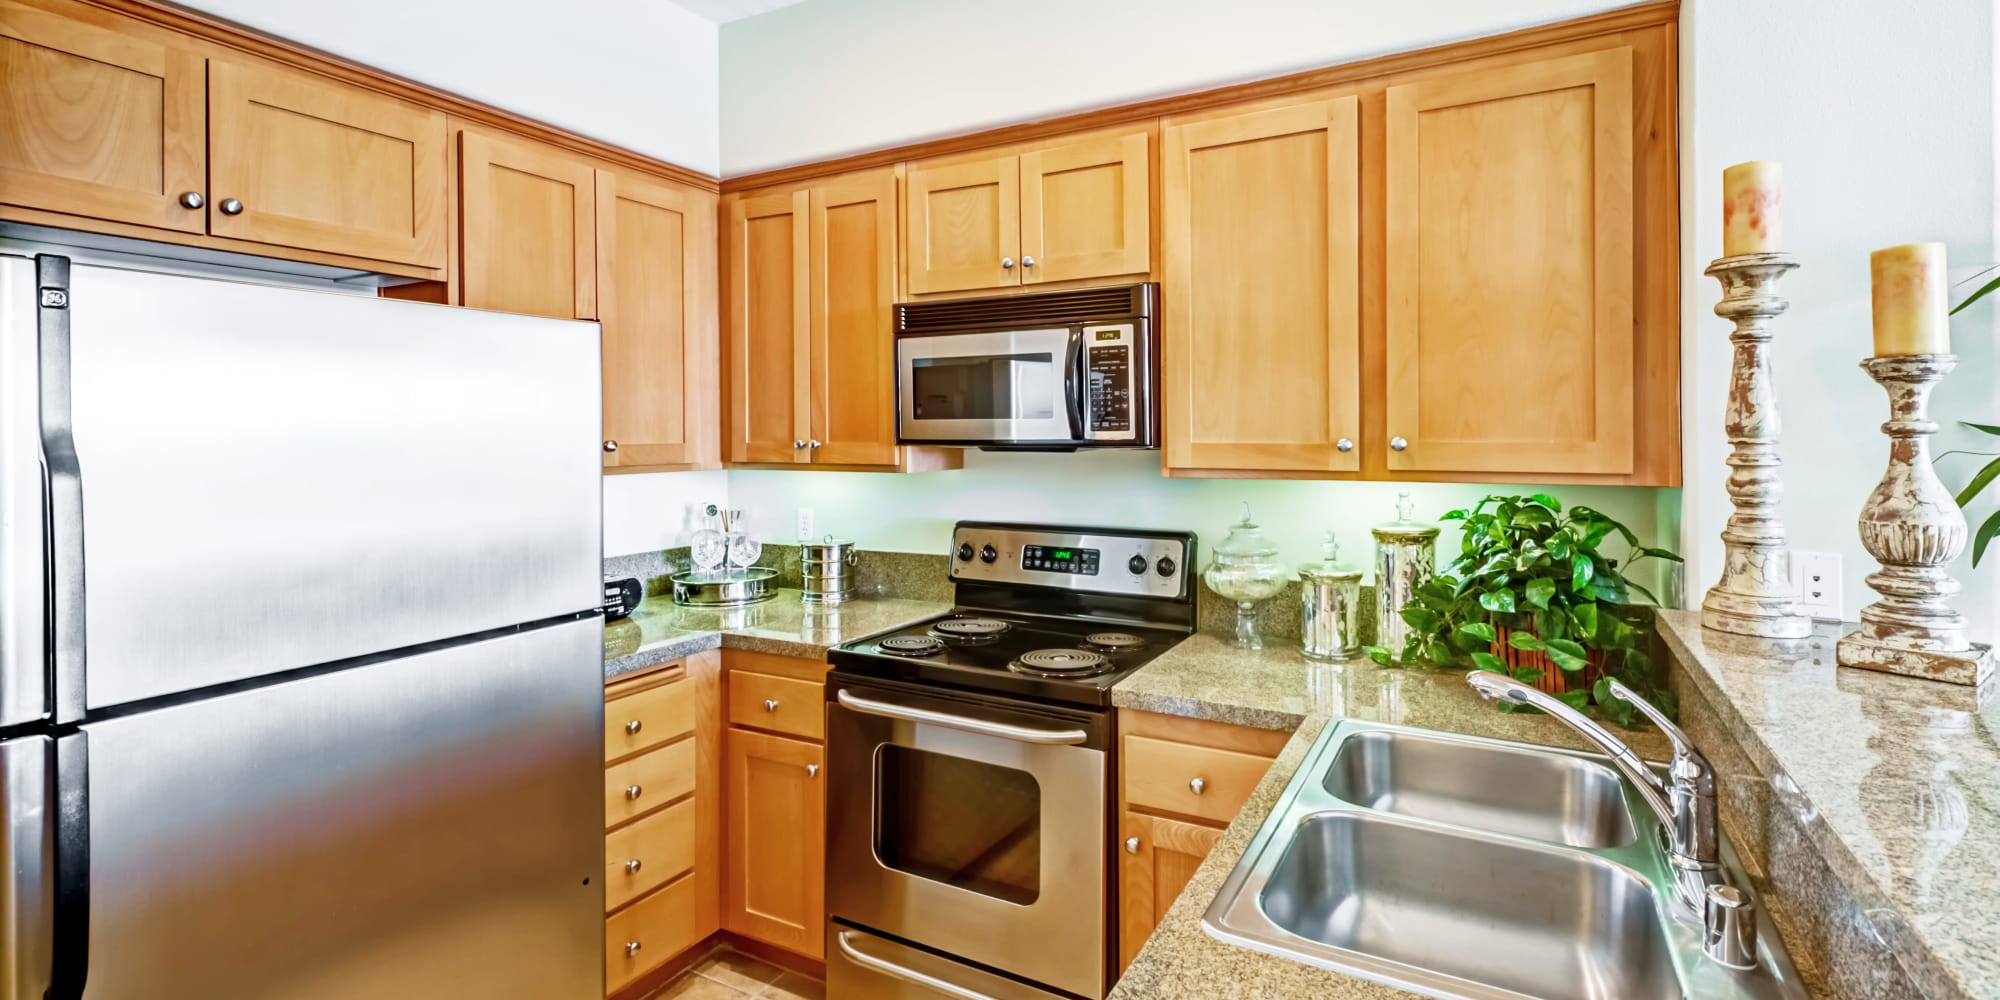 Stainless-steel appliances and granite countertops in a model home's kitchen at The Villa at Marina Harbor in Marina del Rey, California